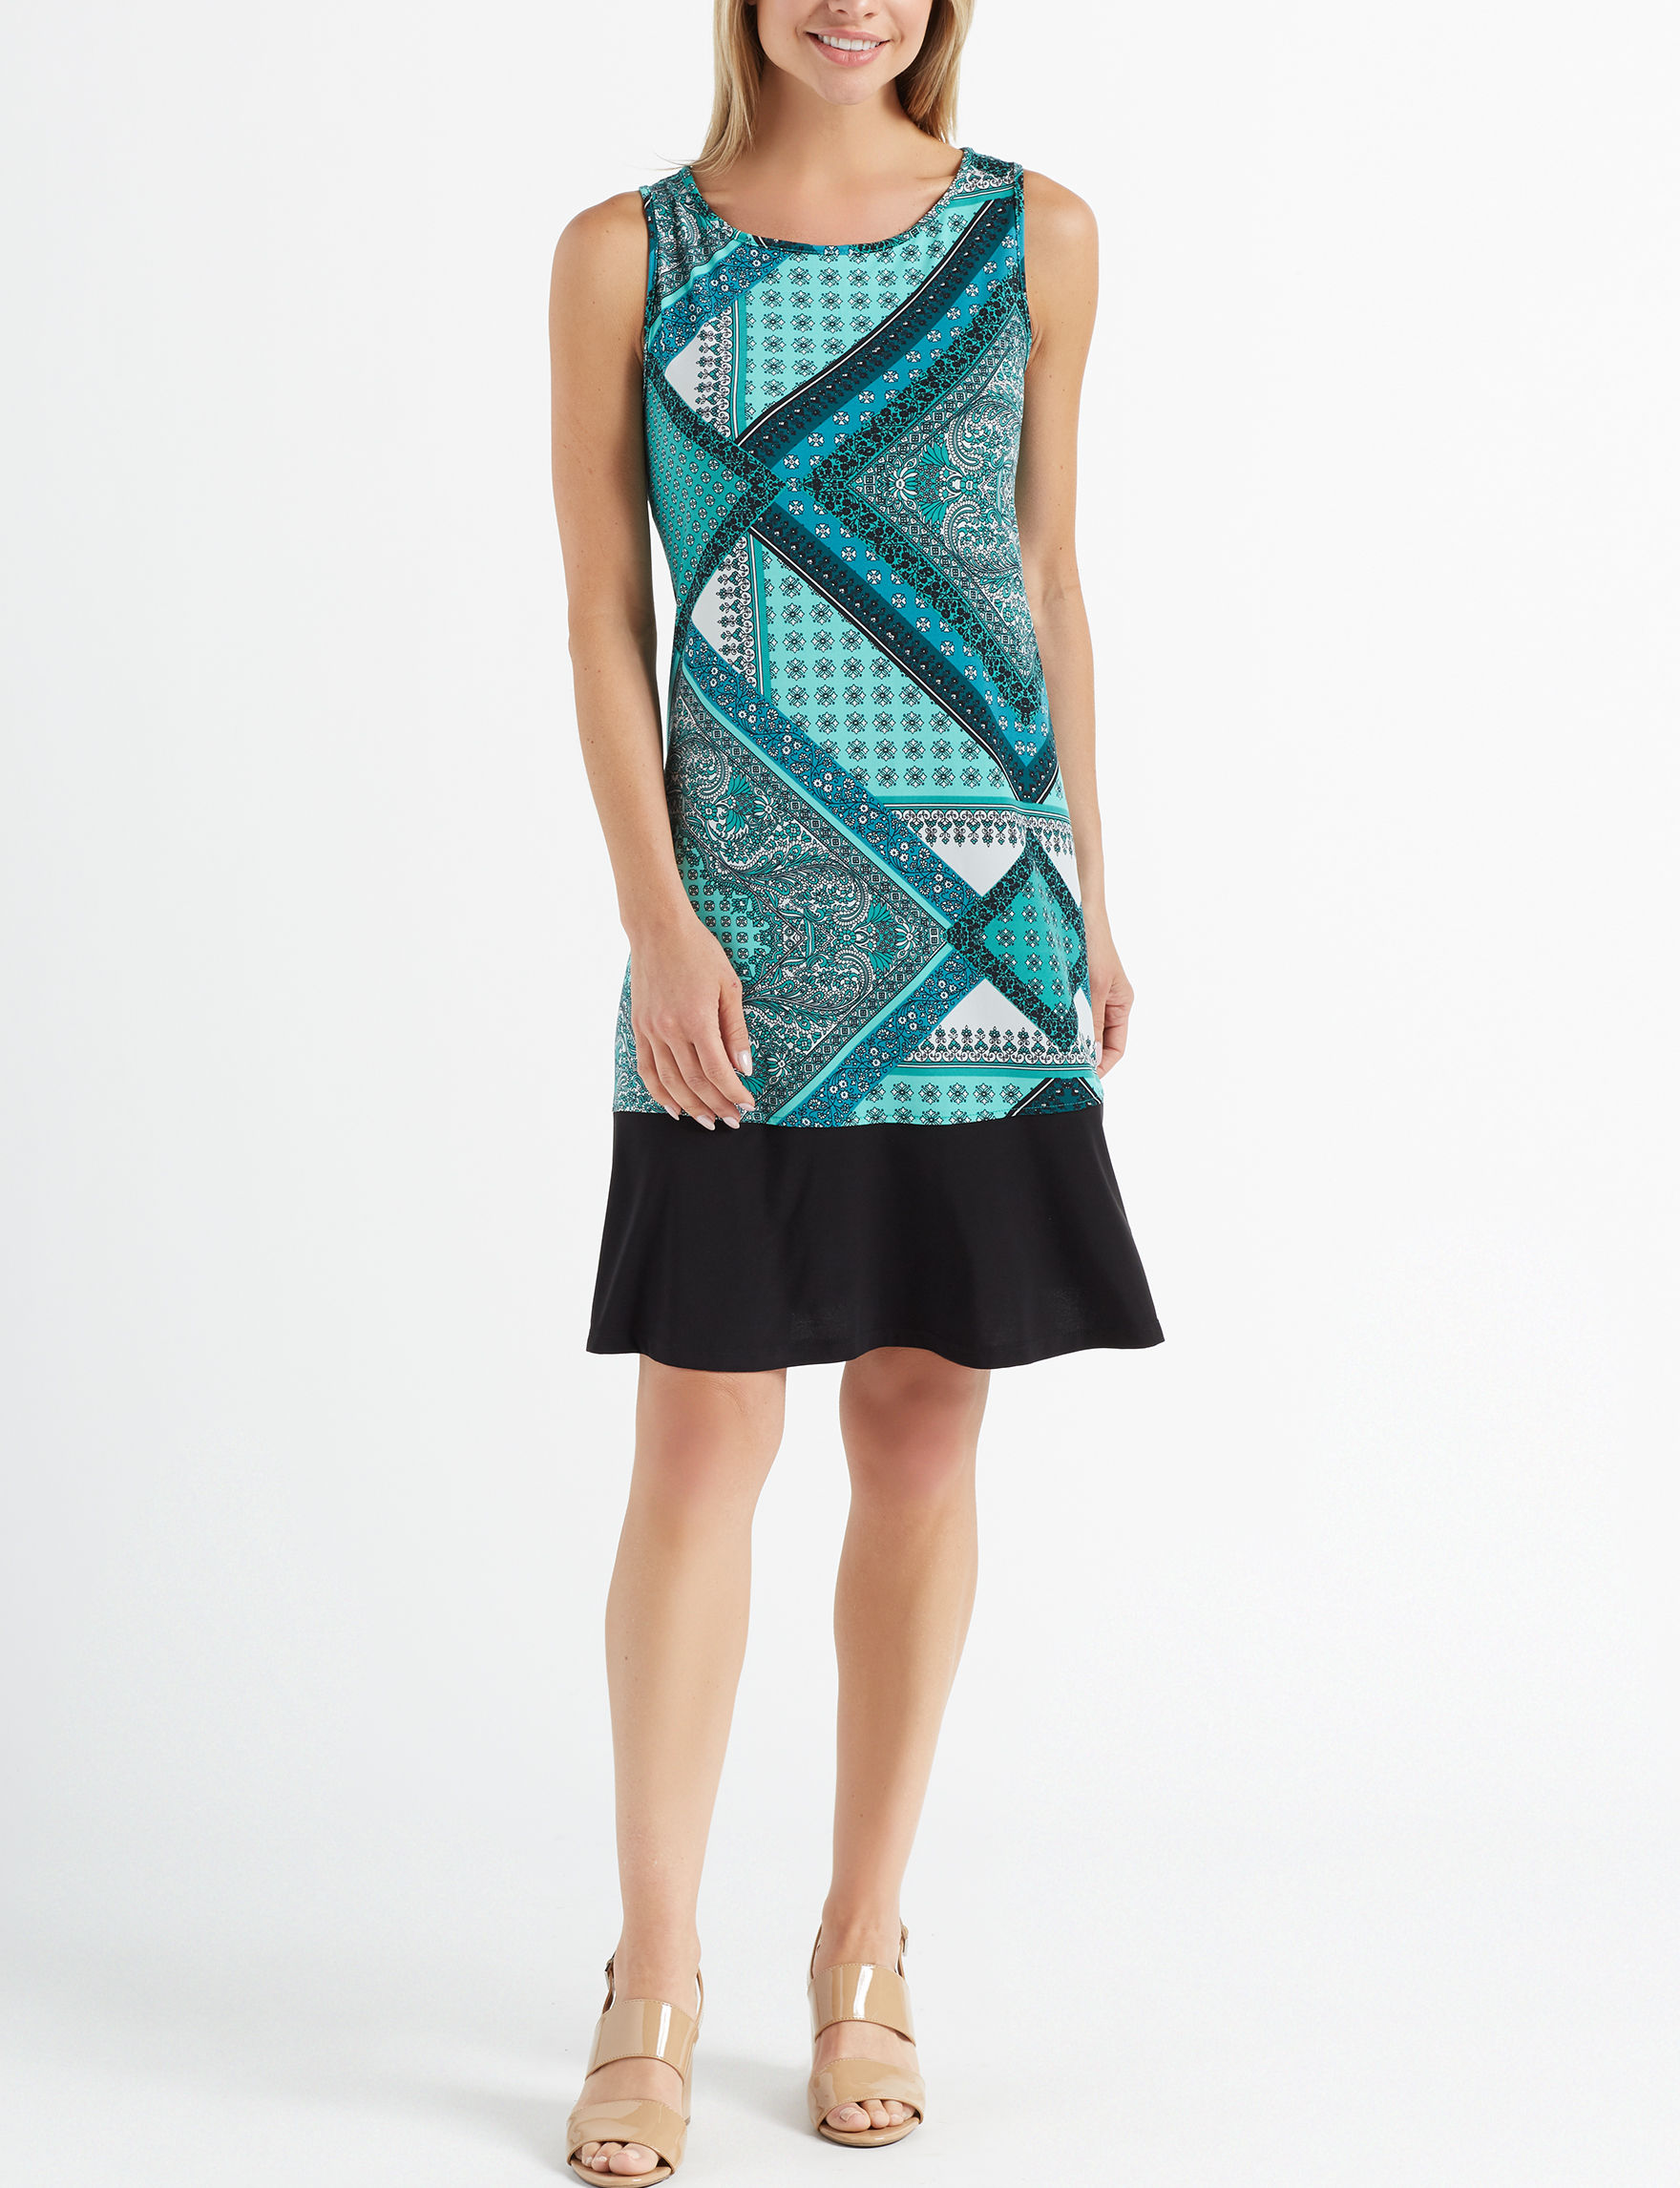 Ronni Nicole Teal Everyday & Casual Shift Dresses